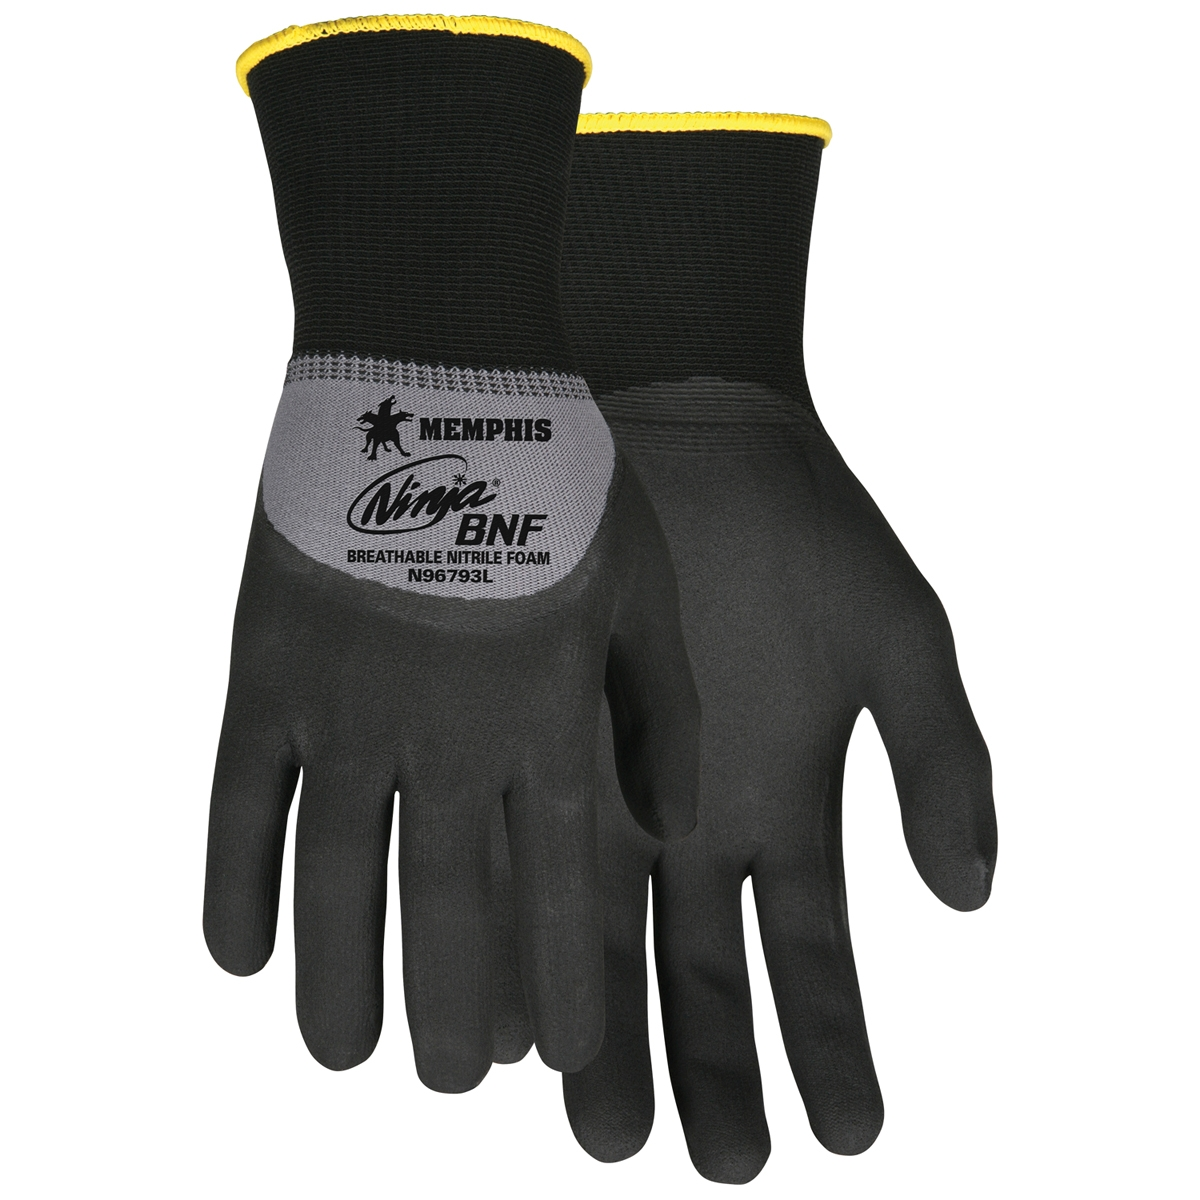 N96793 : Memphis Ninja Gloves - 15 Gauge Nylon/Spandex Knit - Nitrile Foam Coated Palm and Knuckle - Black